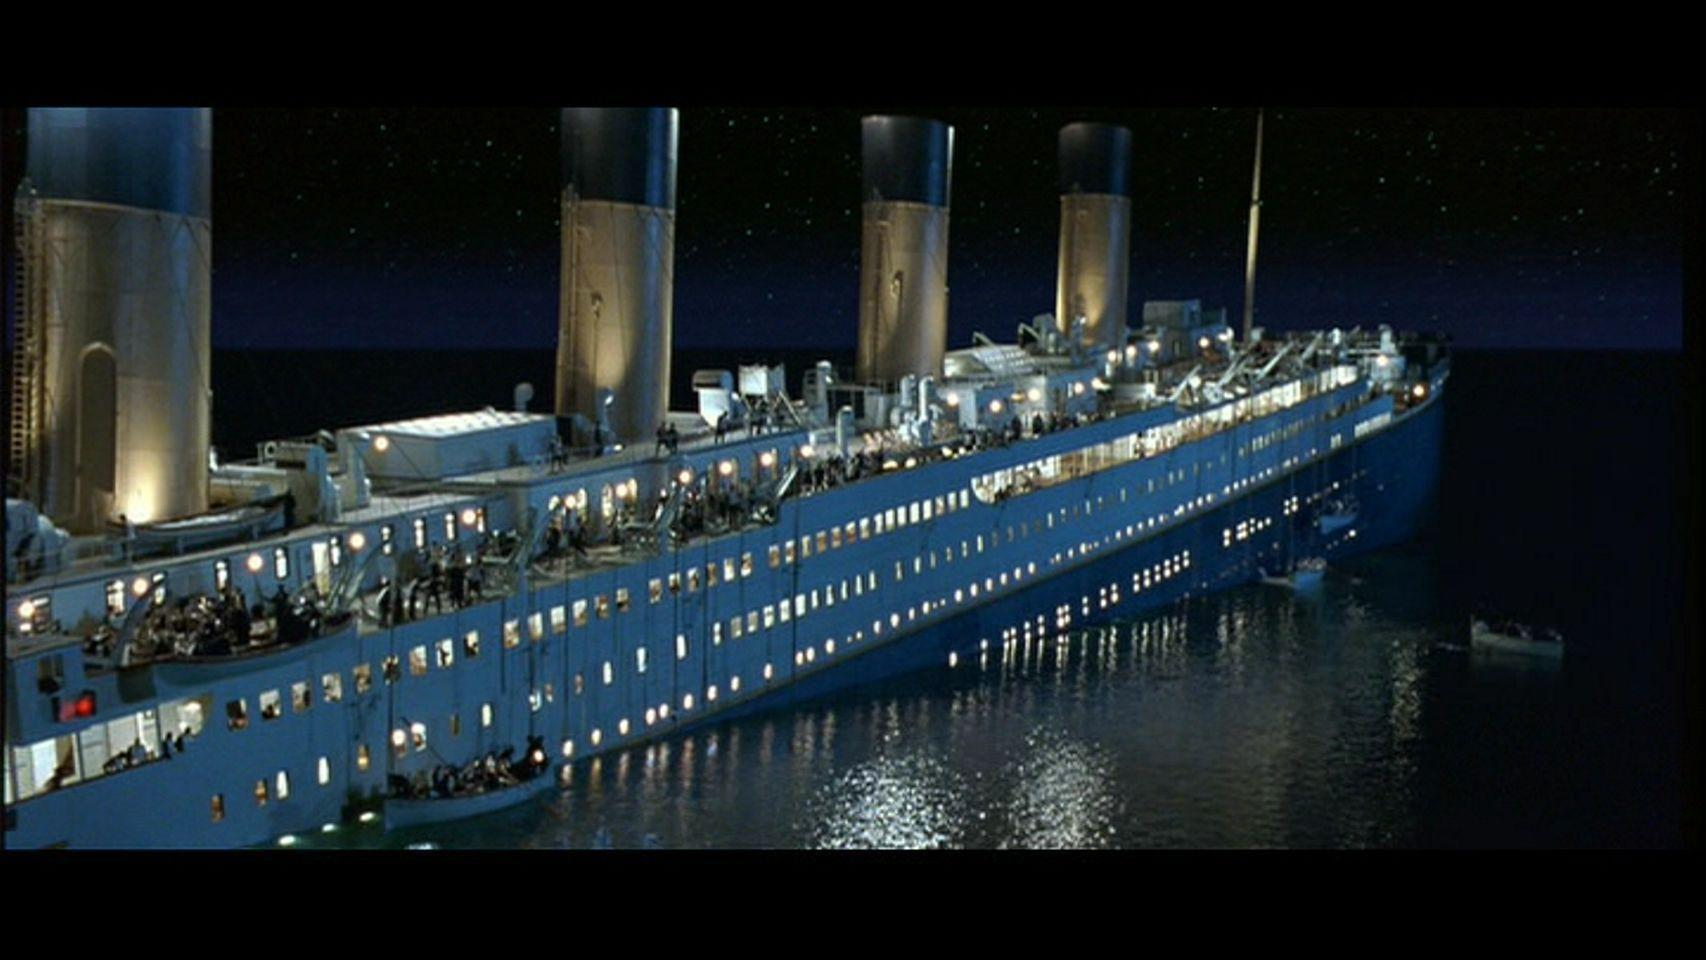 Titanic Full Movie In Hindi Hd Taylor Swift Safe And Sound Video